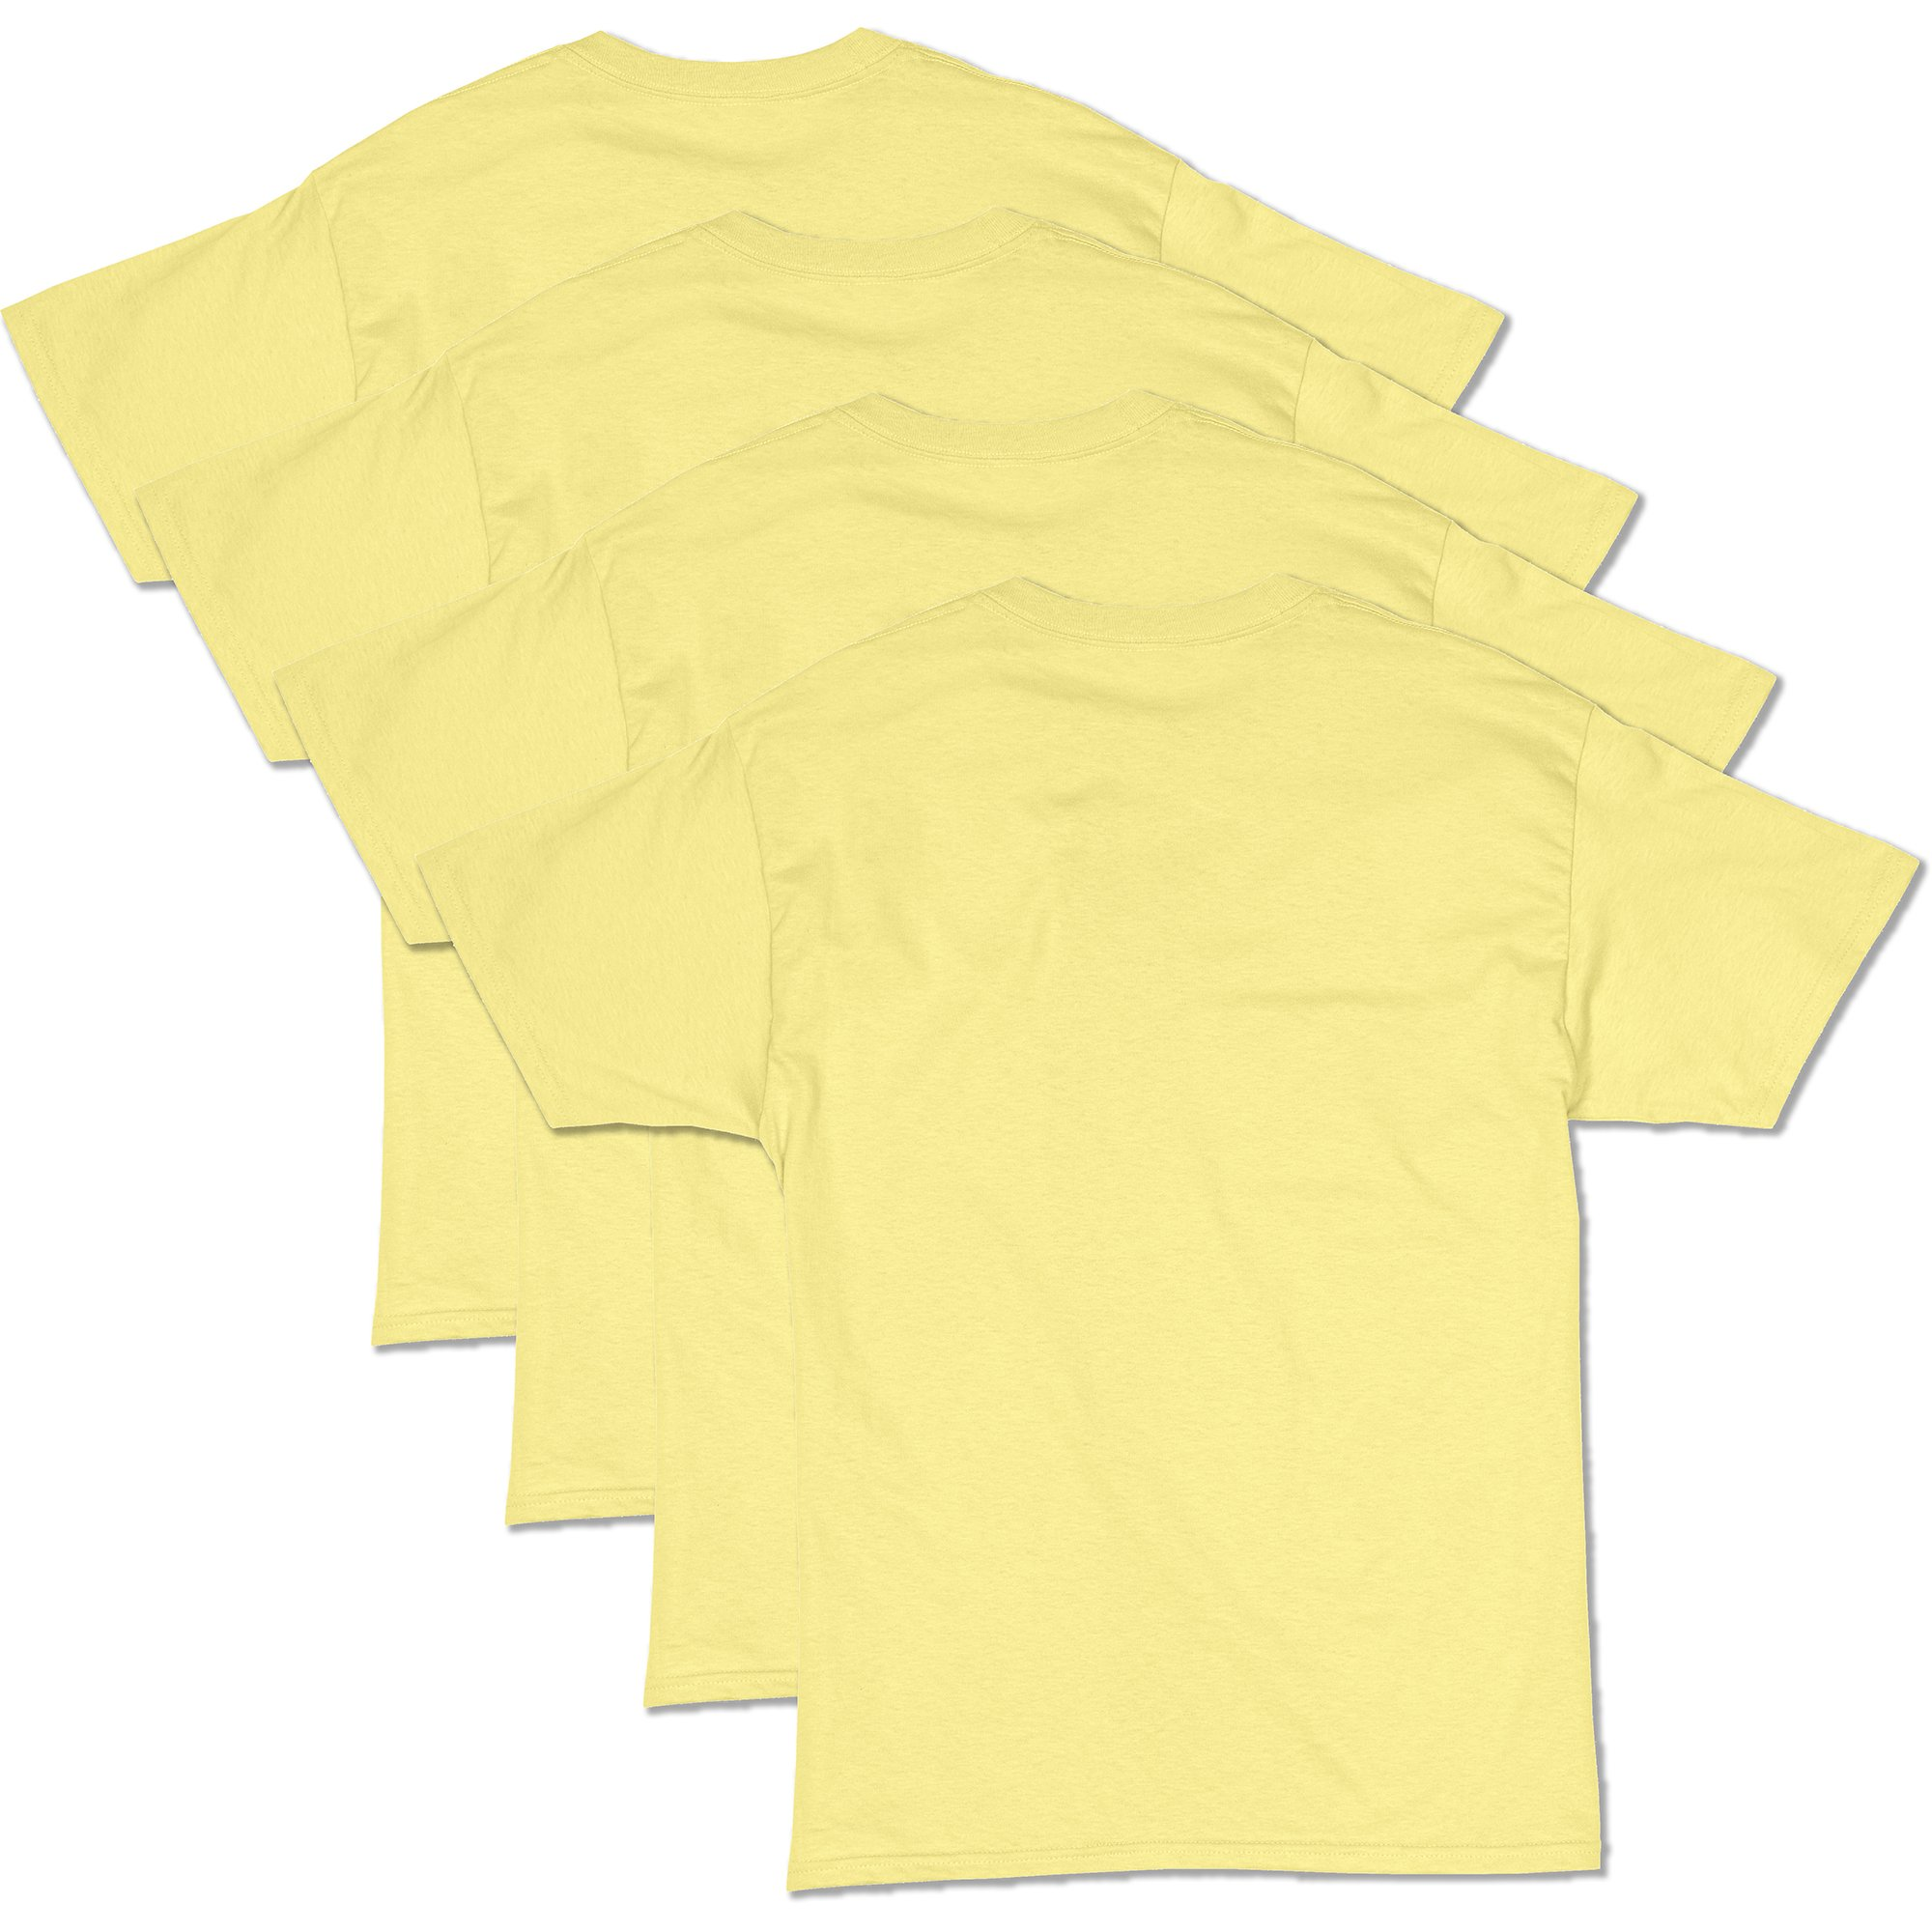 Hanes Men's Comfortsoft T-Shirt (Pack Of 4),yellow,3XL by Hanes (Image #2)